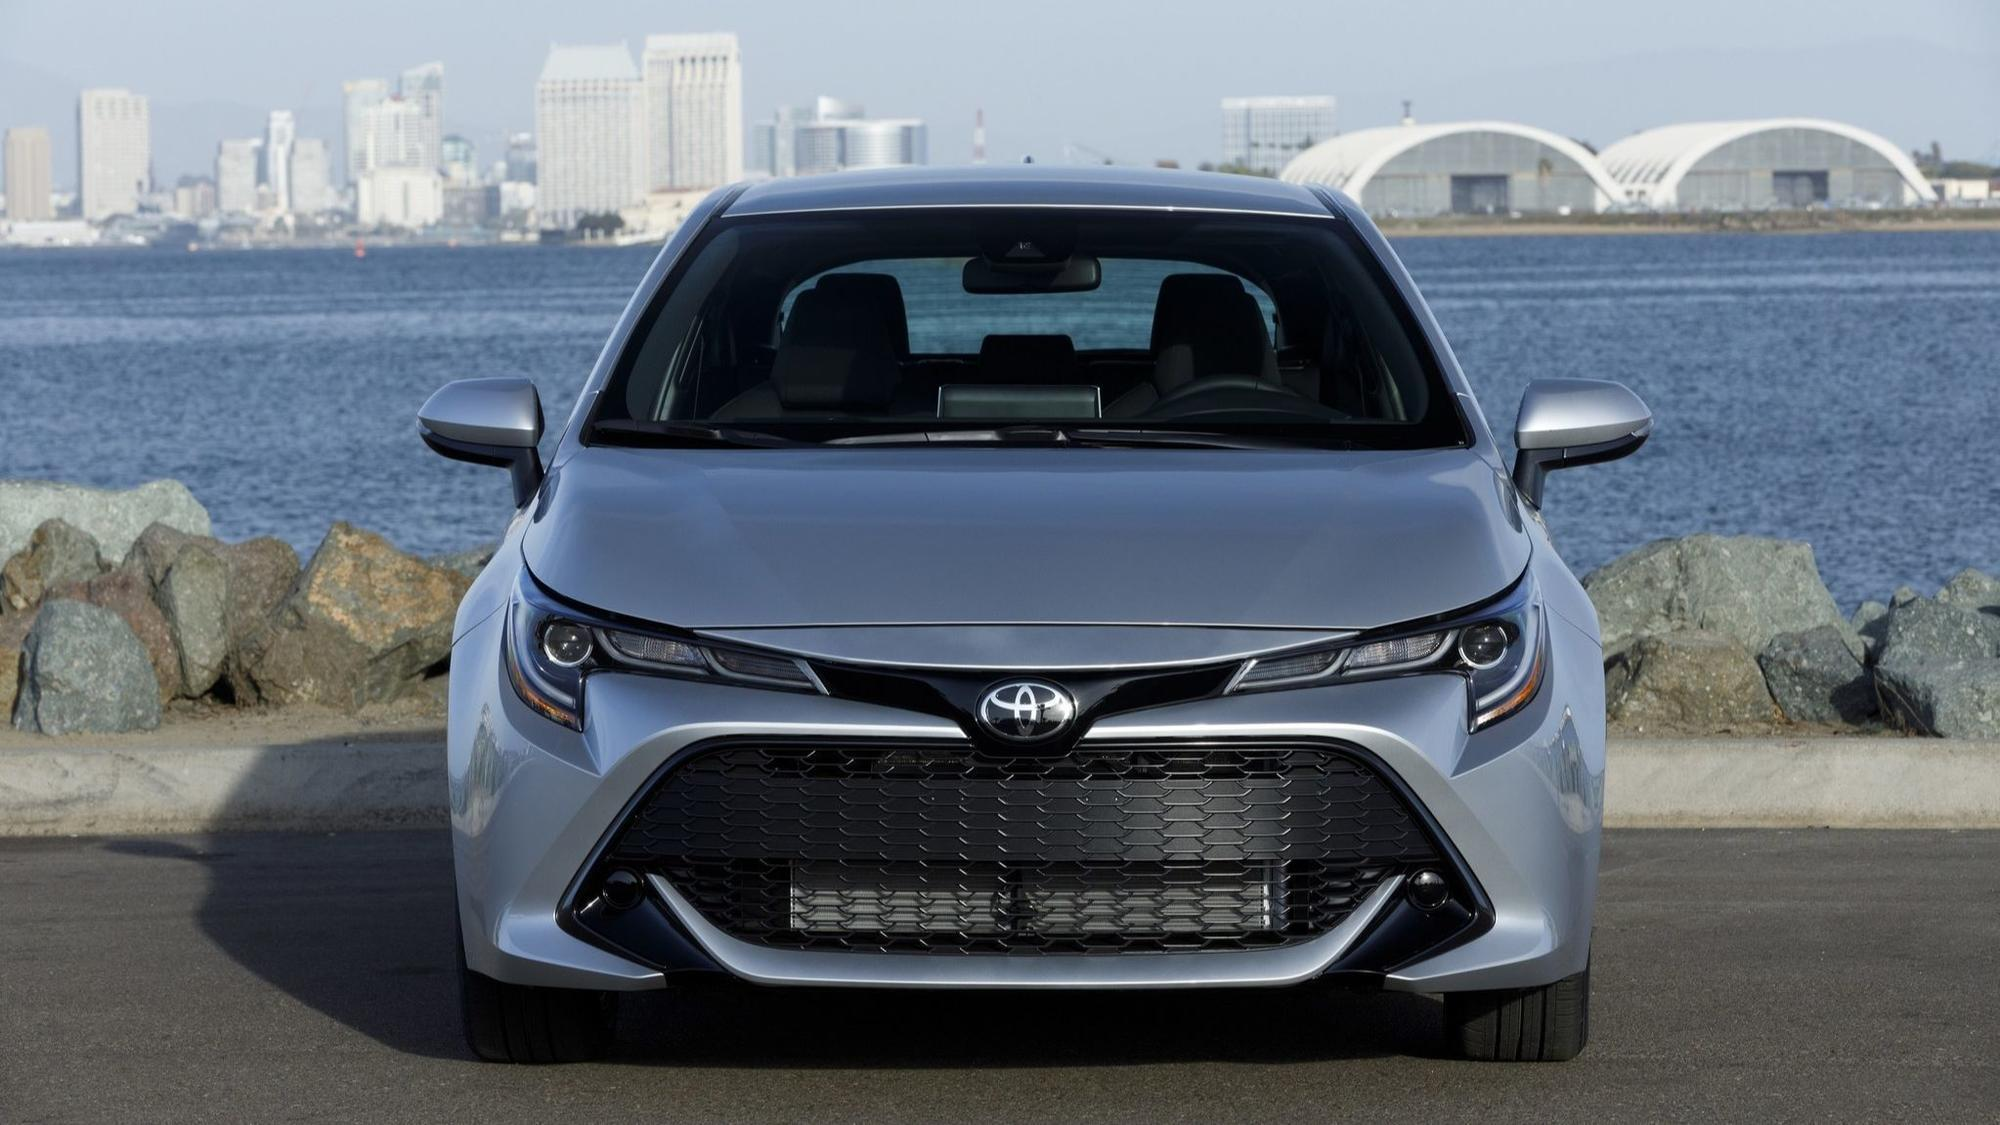 2019 Toyota Corolla Hatchback The shape of things to e The San